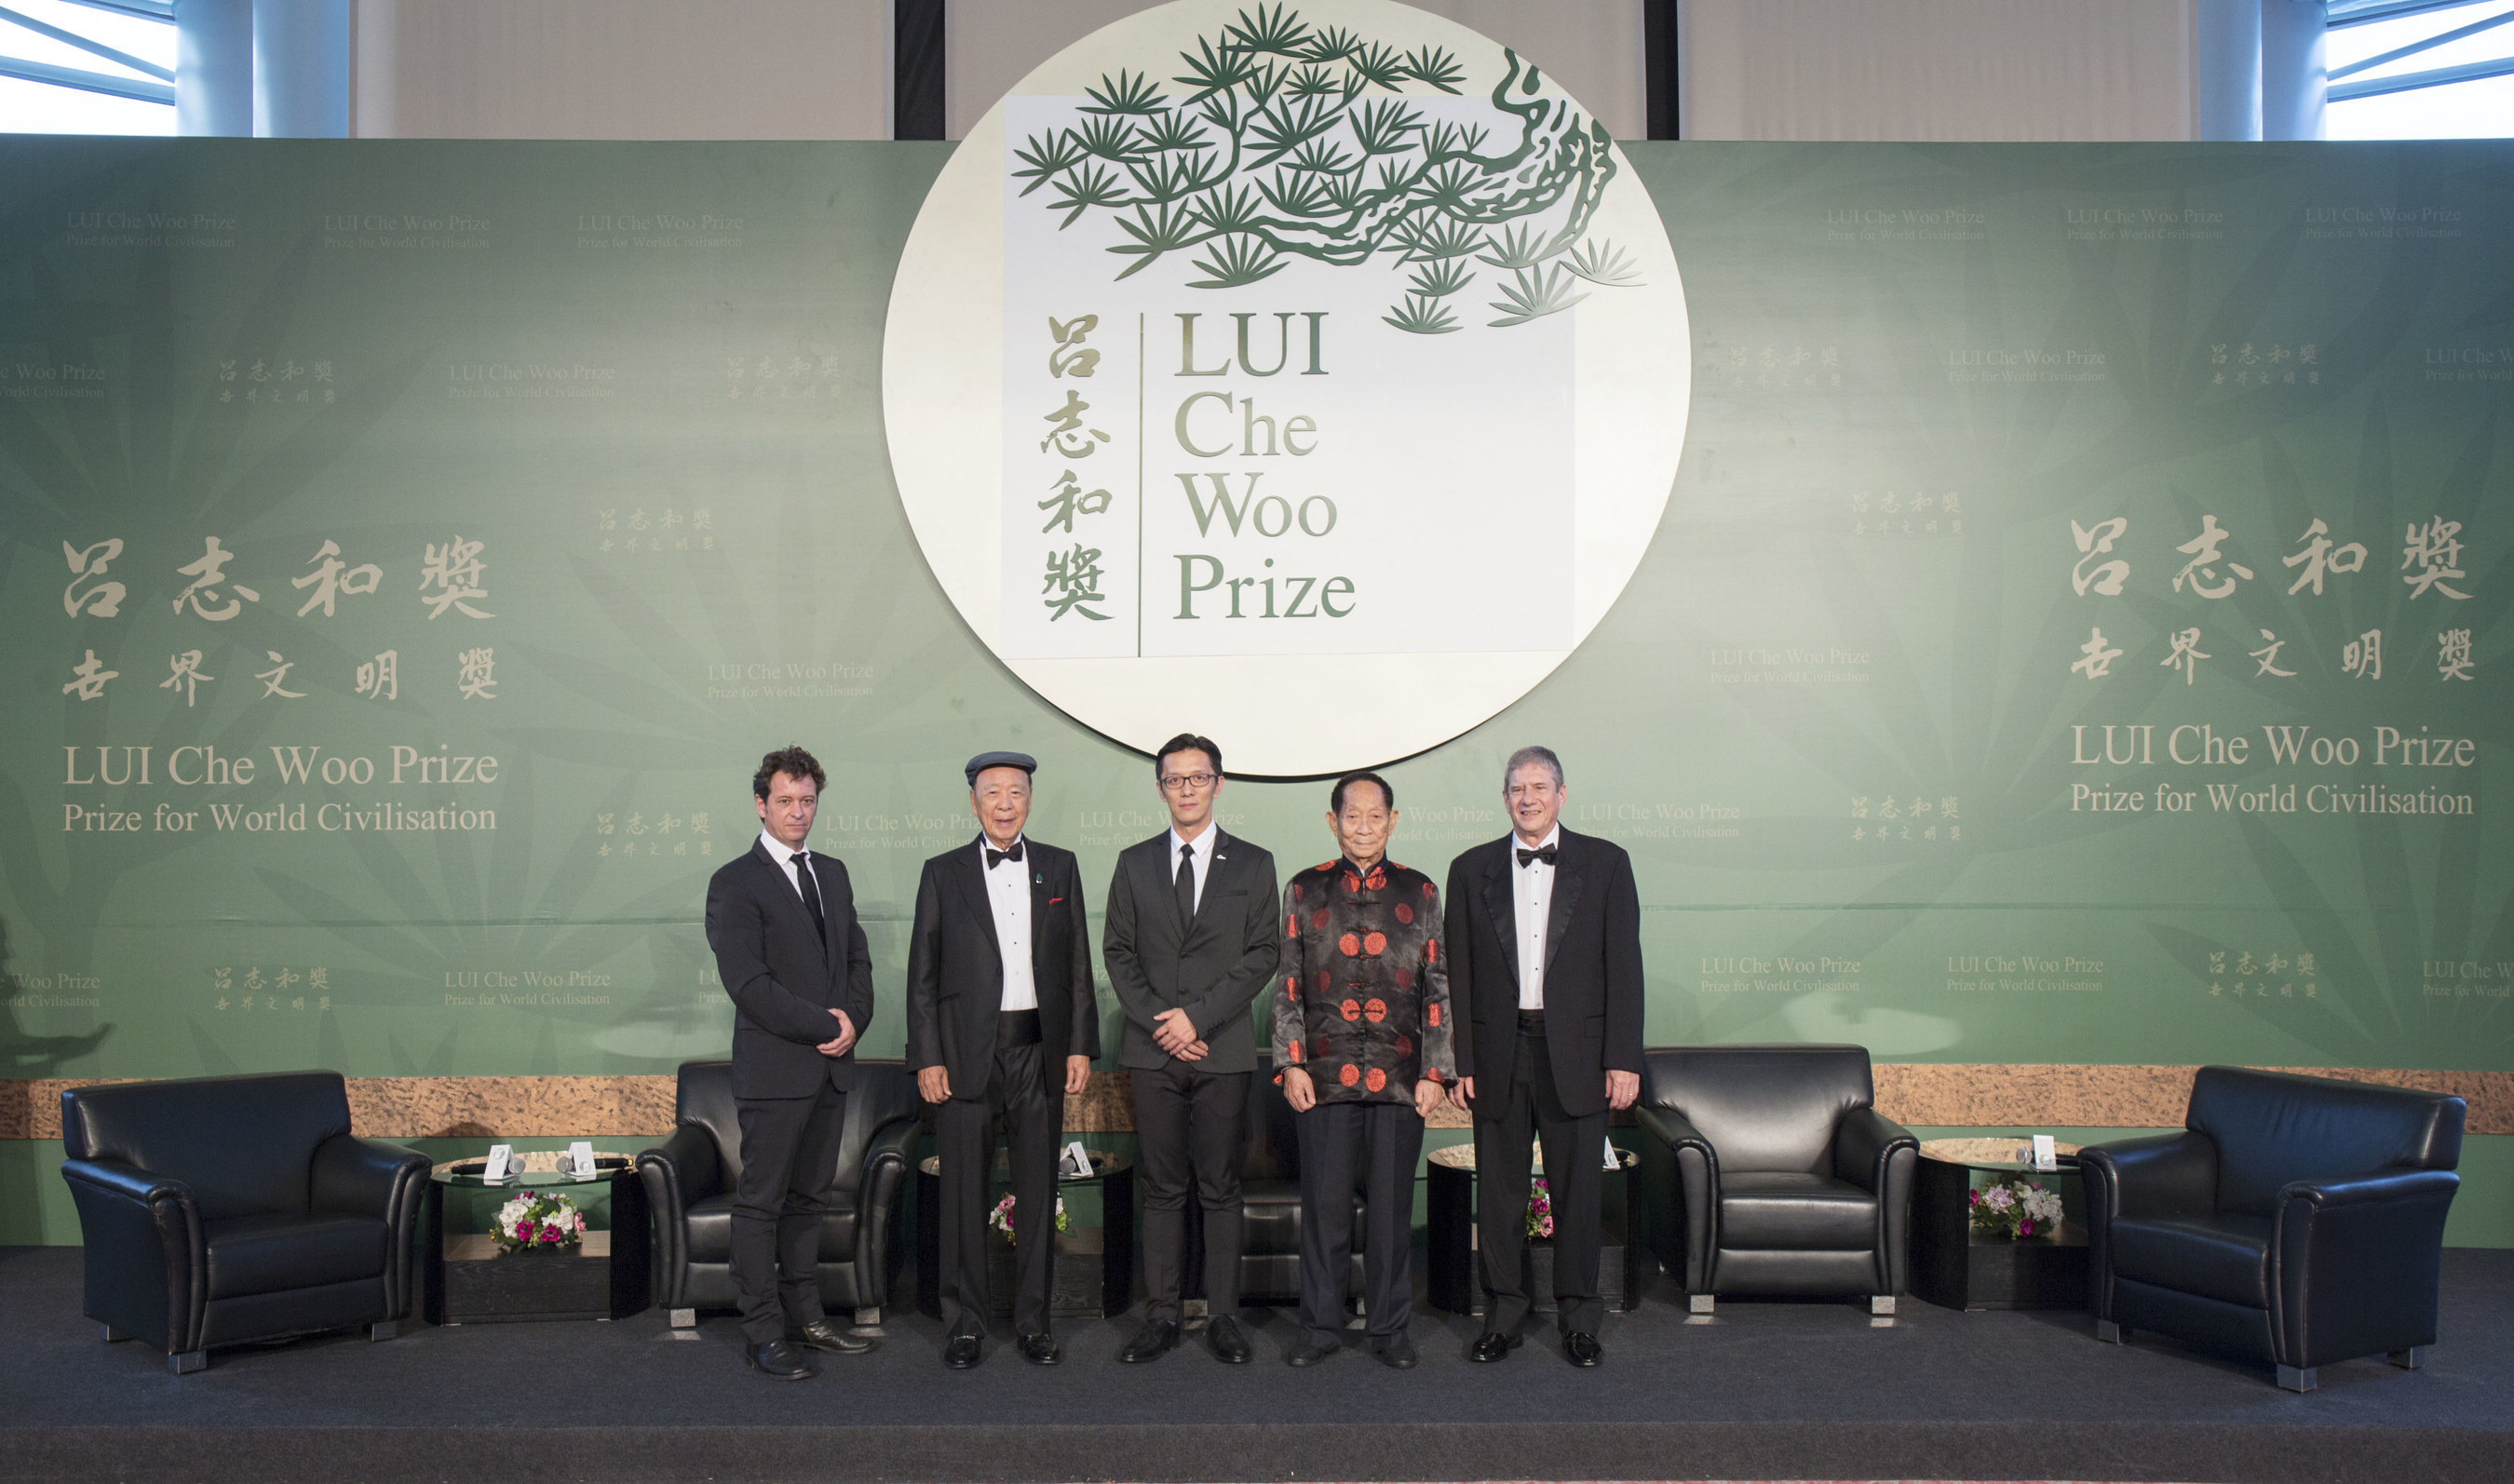 Chen Che Lui Che Woo Prize Prize For World Civilisation Inaugural Prize